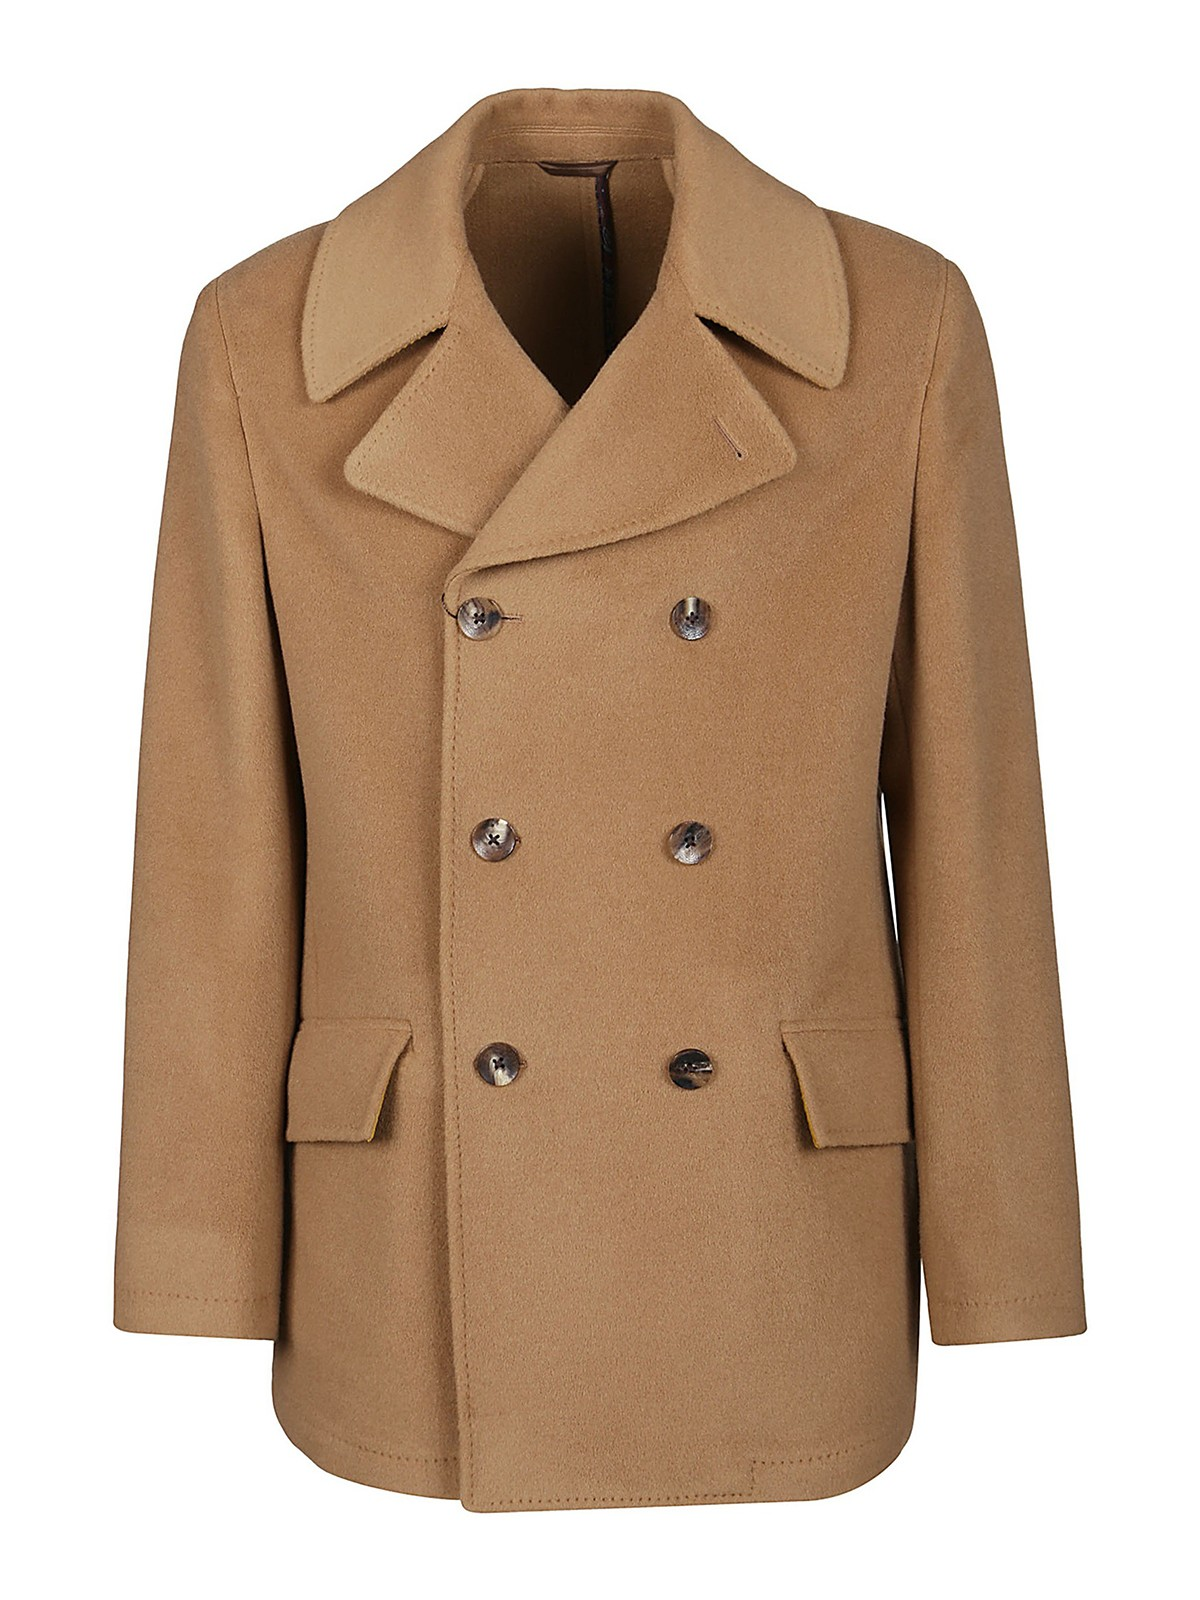 Etro WOOL AND CASHMERE PEACOAT